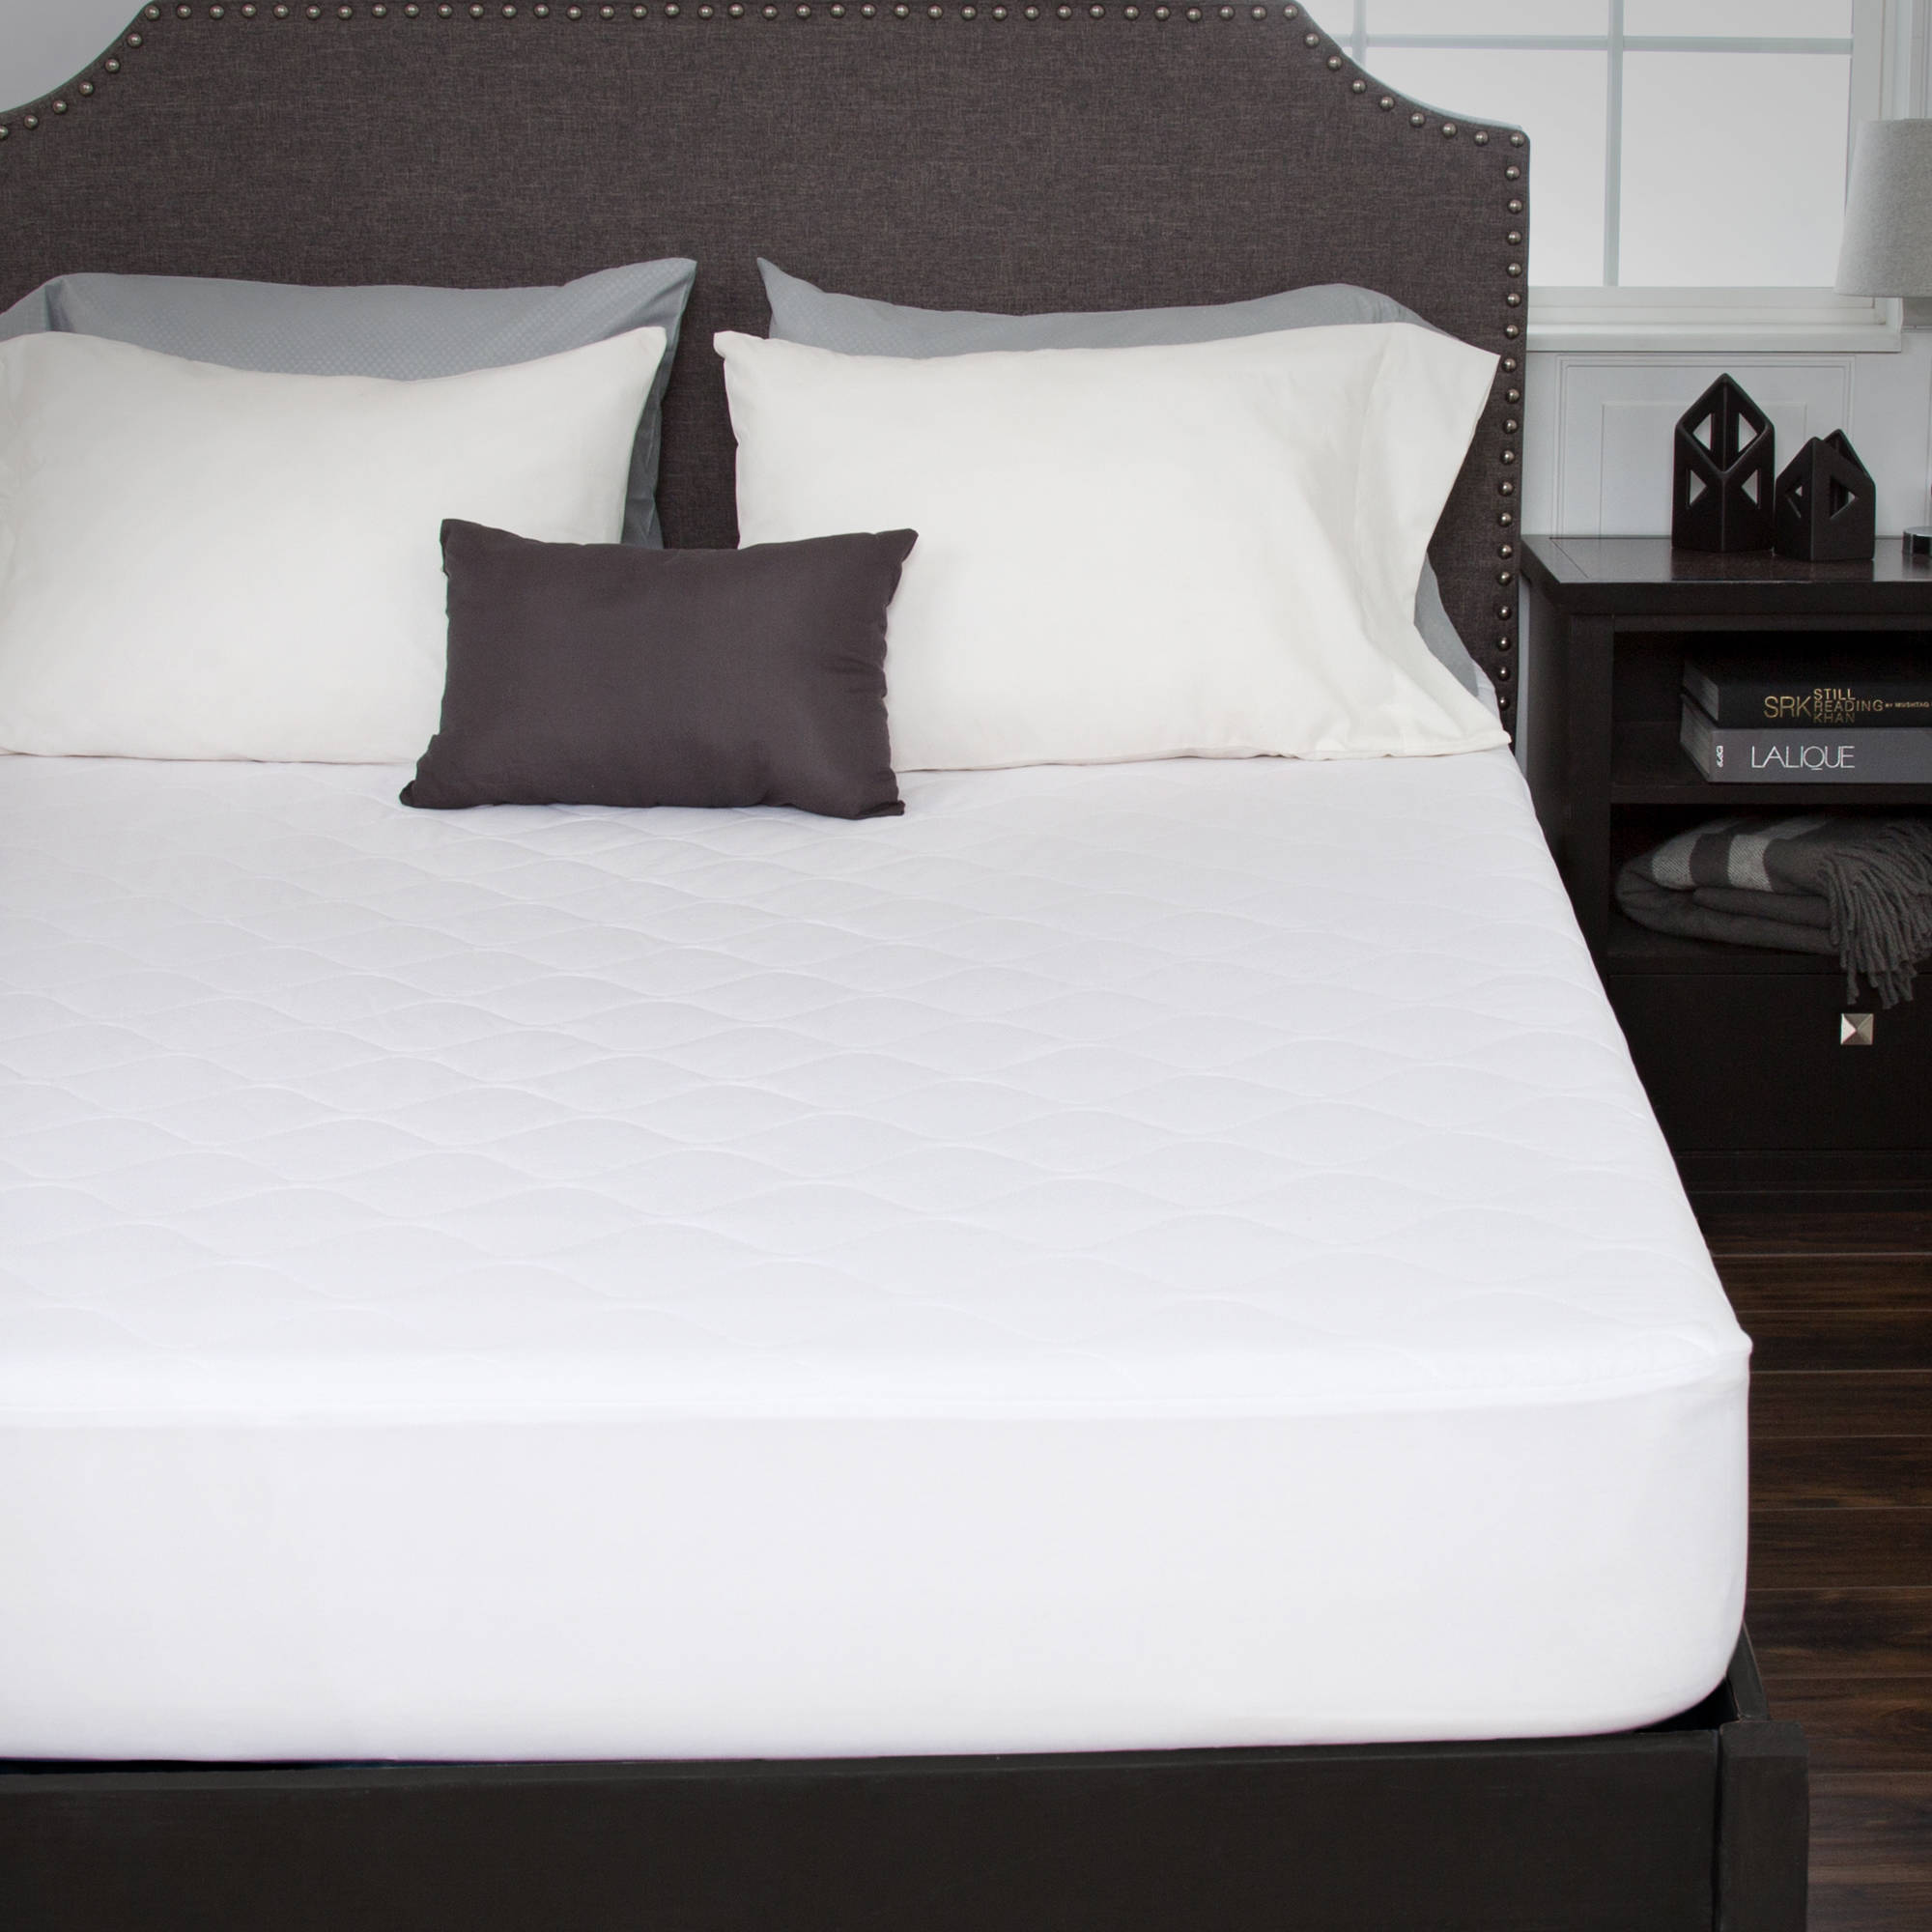 Somerset Home Down Alternative Cotton Mattress Pad with Fitted Skirt